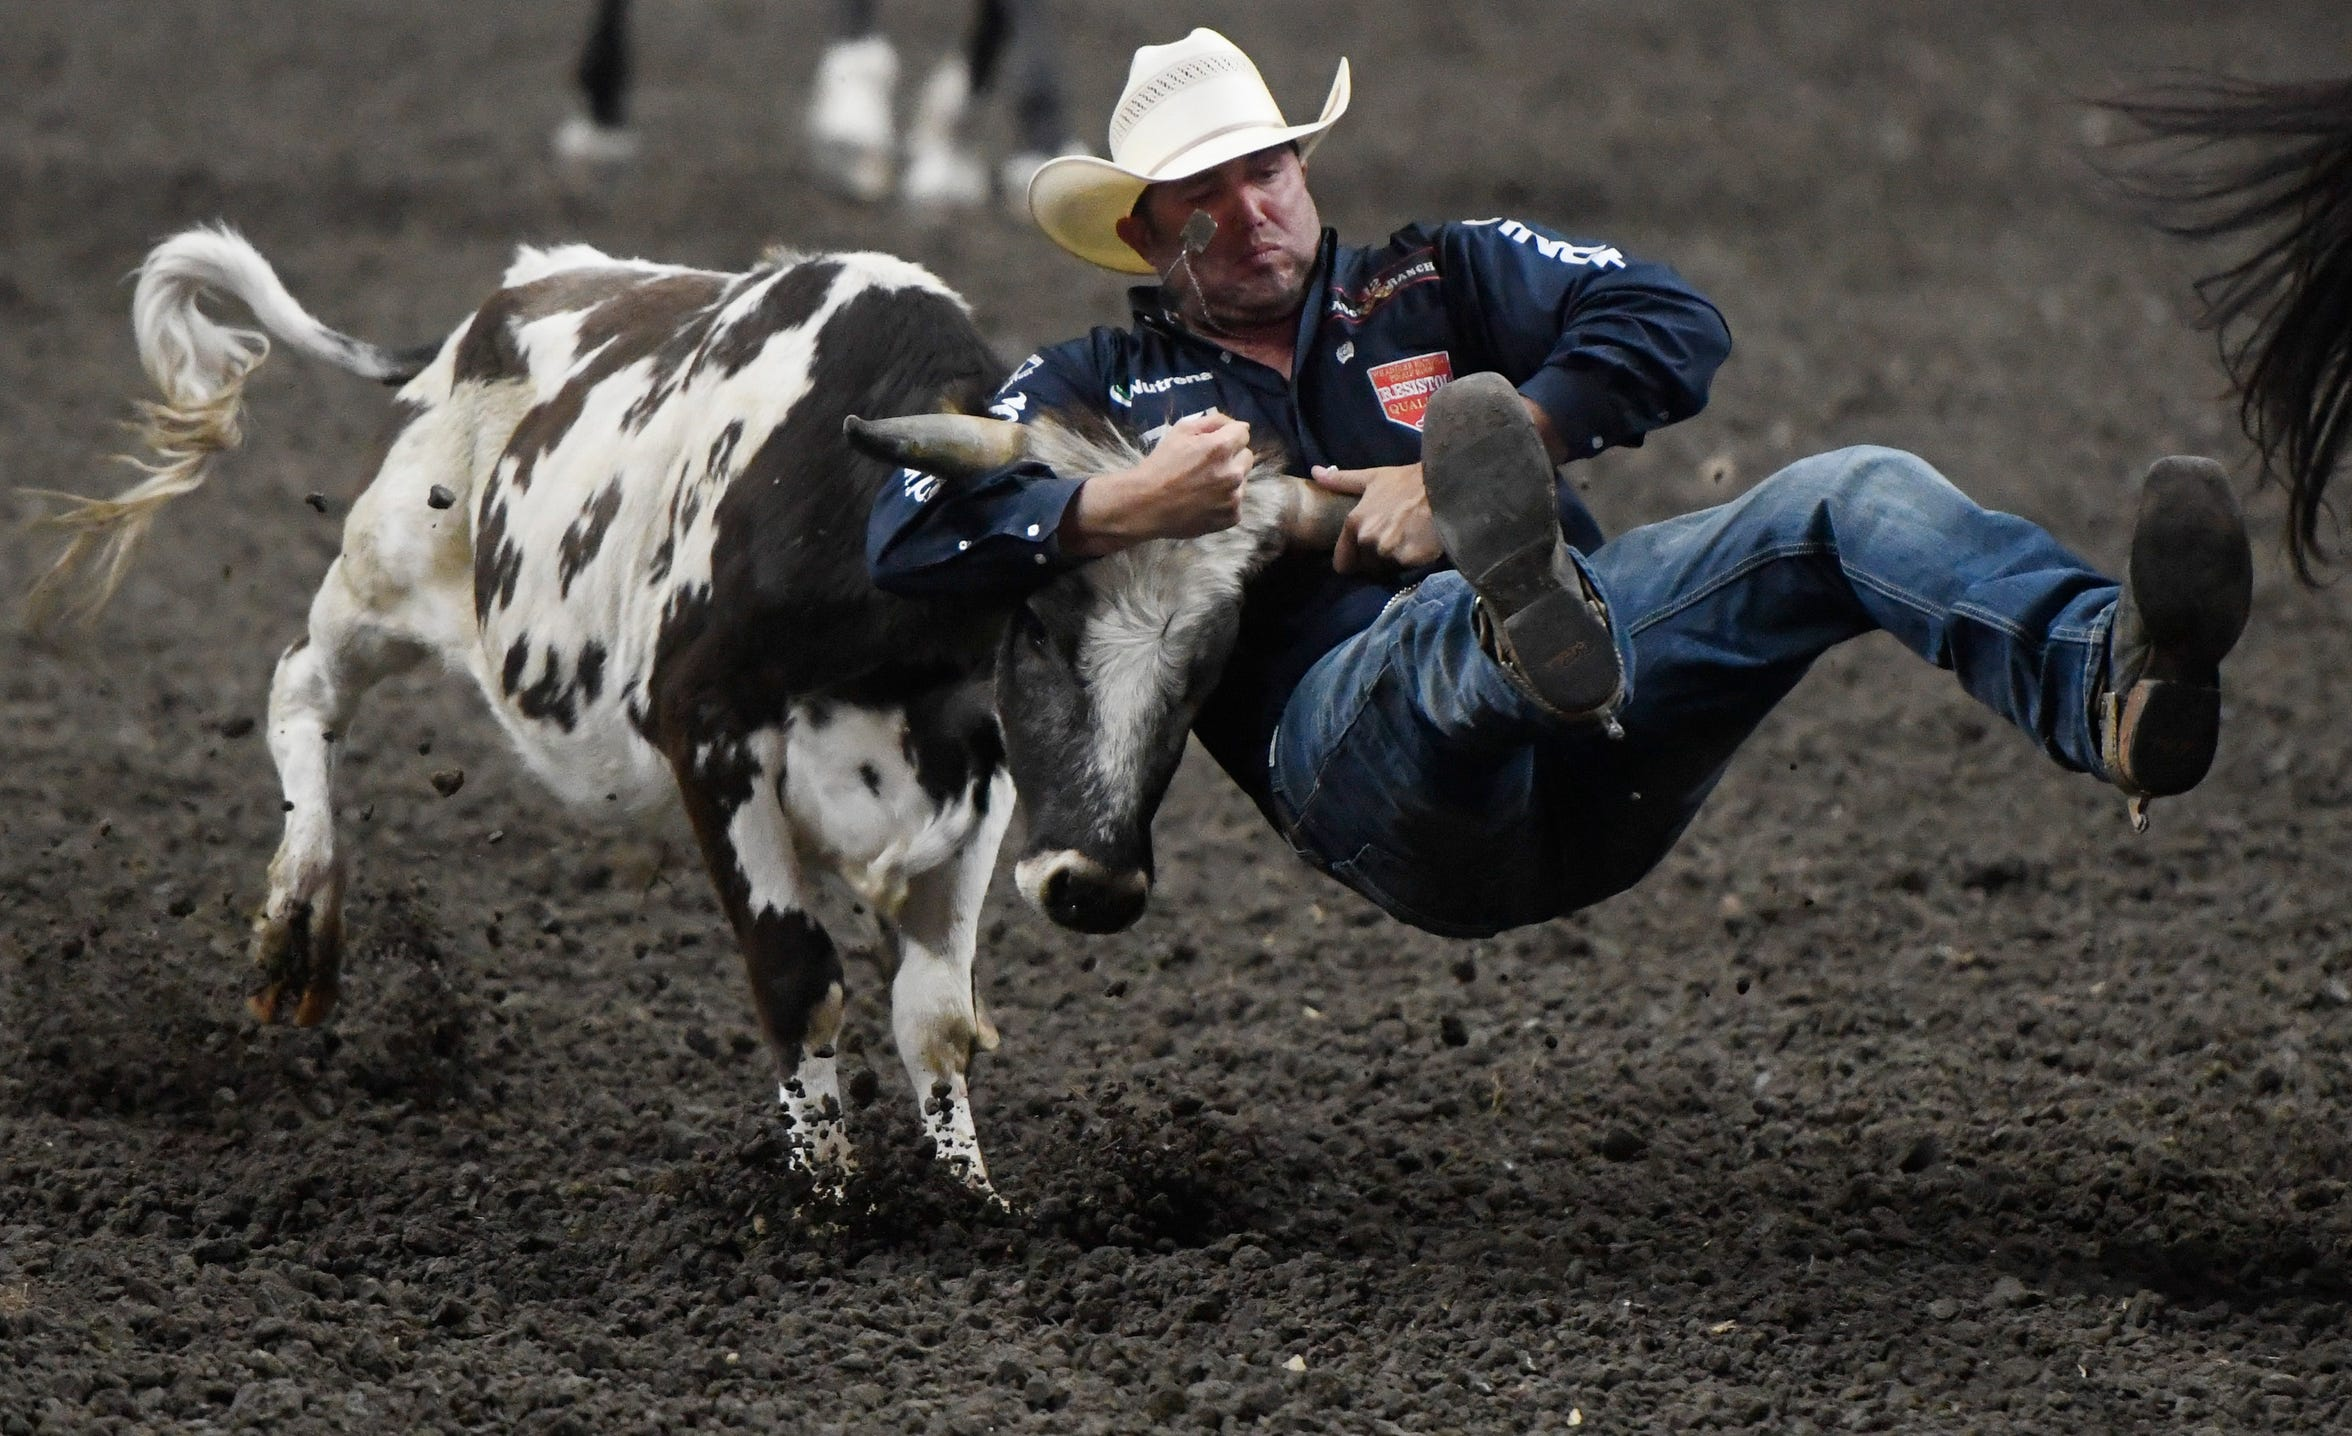 Denver Berry wrestles a steer during the Corpus Christi rodeo, Friday, April 26, 2019, at the American Bank Center.